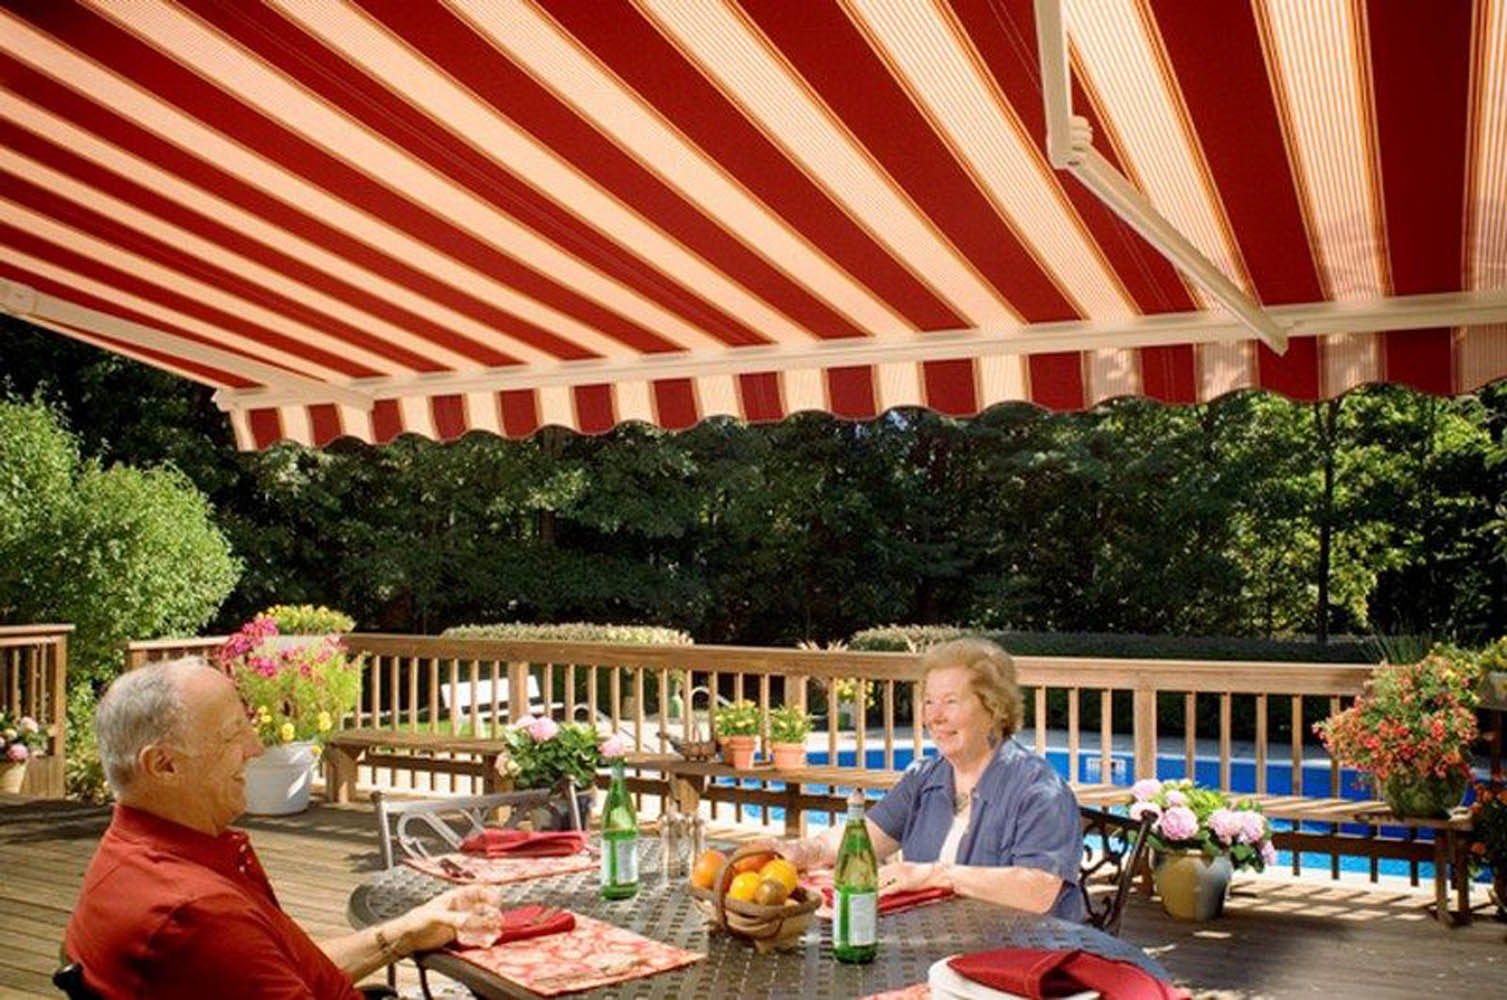 Sunsetter Awnings | Columbus Retractable Awnings | Shade